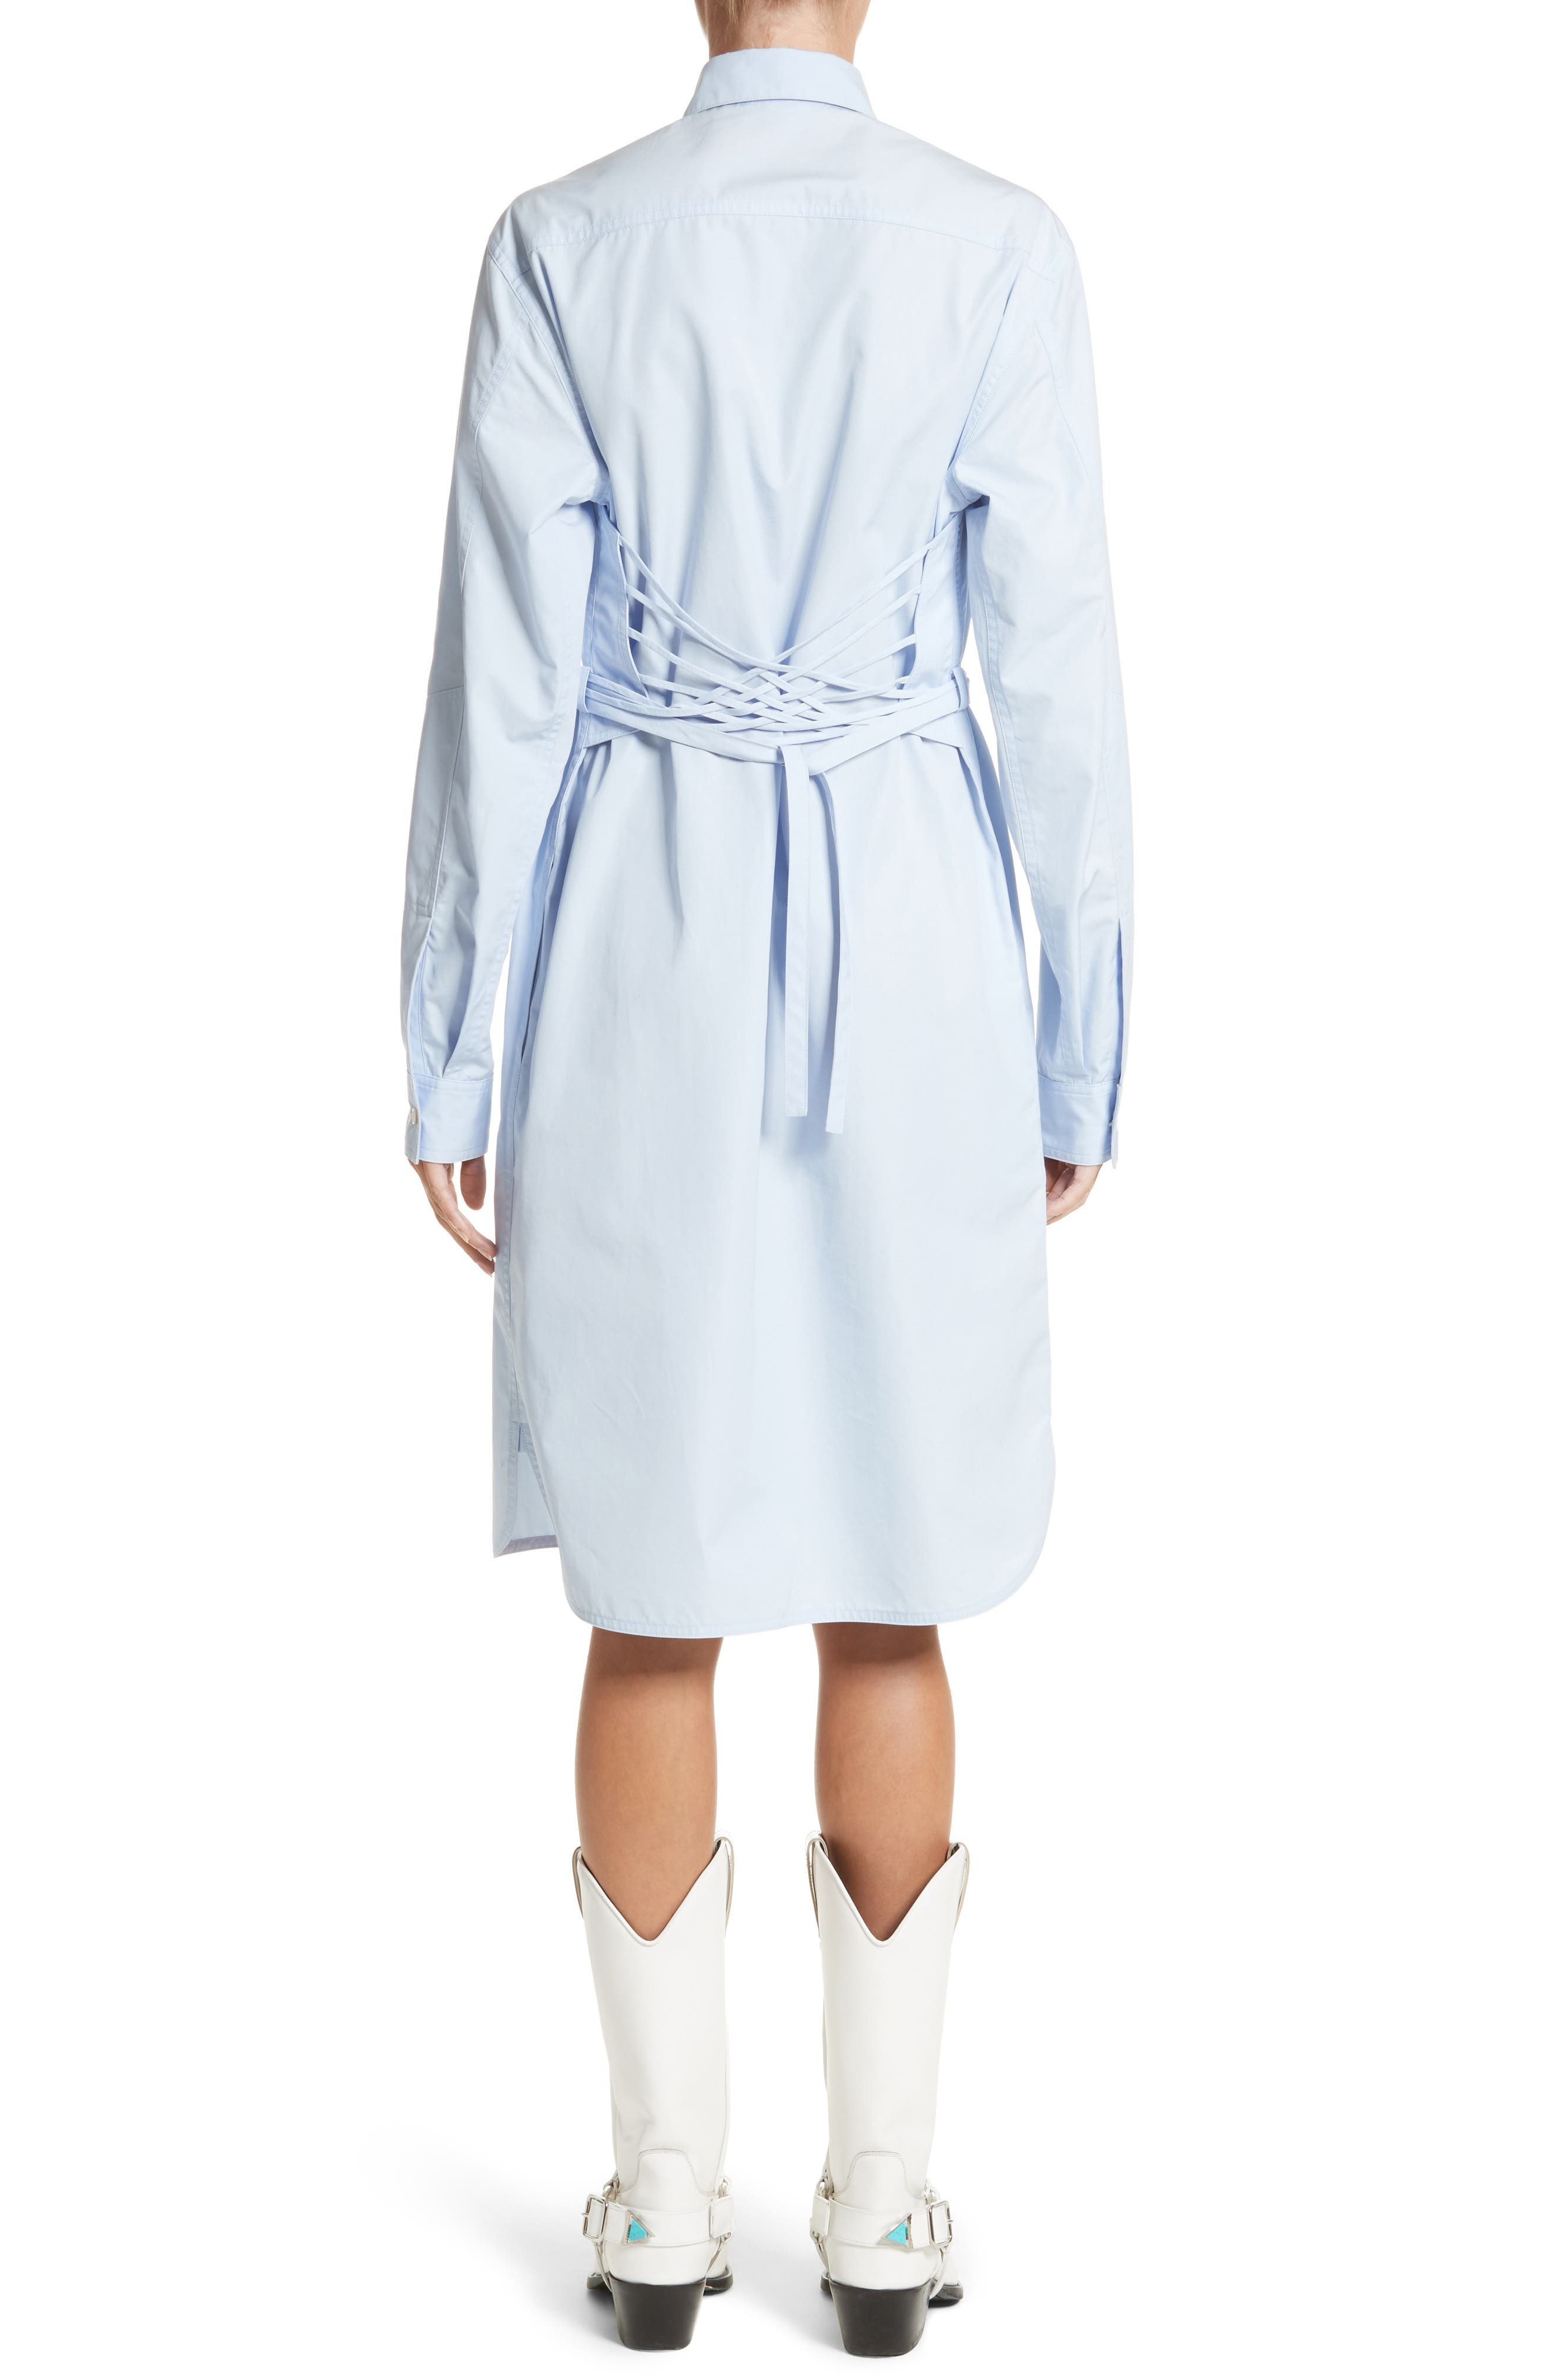 Alternate Image 2  - CALVIN KLEIN 205W39NYC Lace-Up Back Cotton Poplin Dress